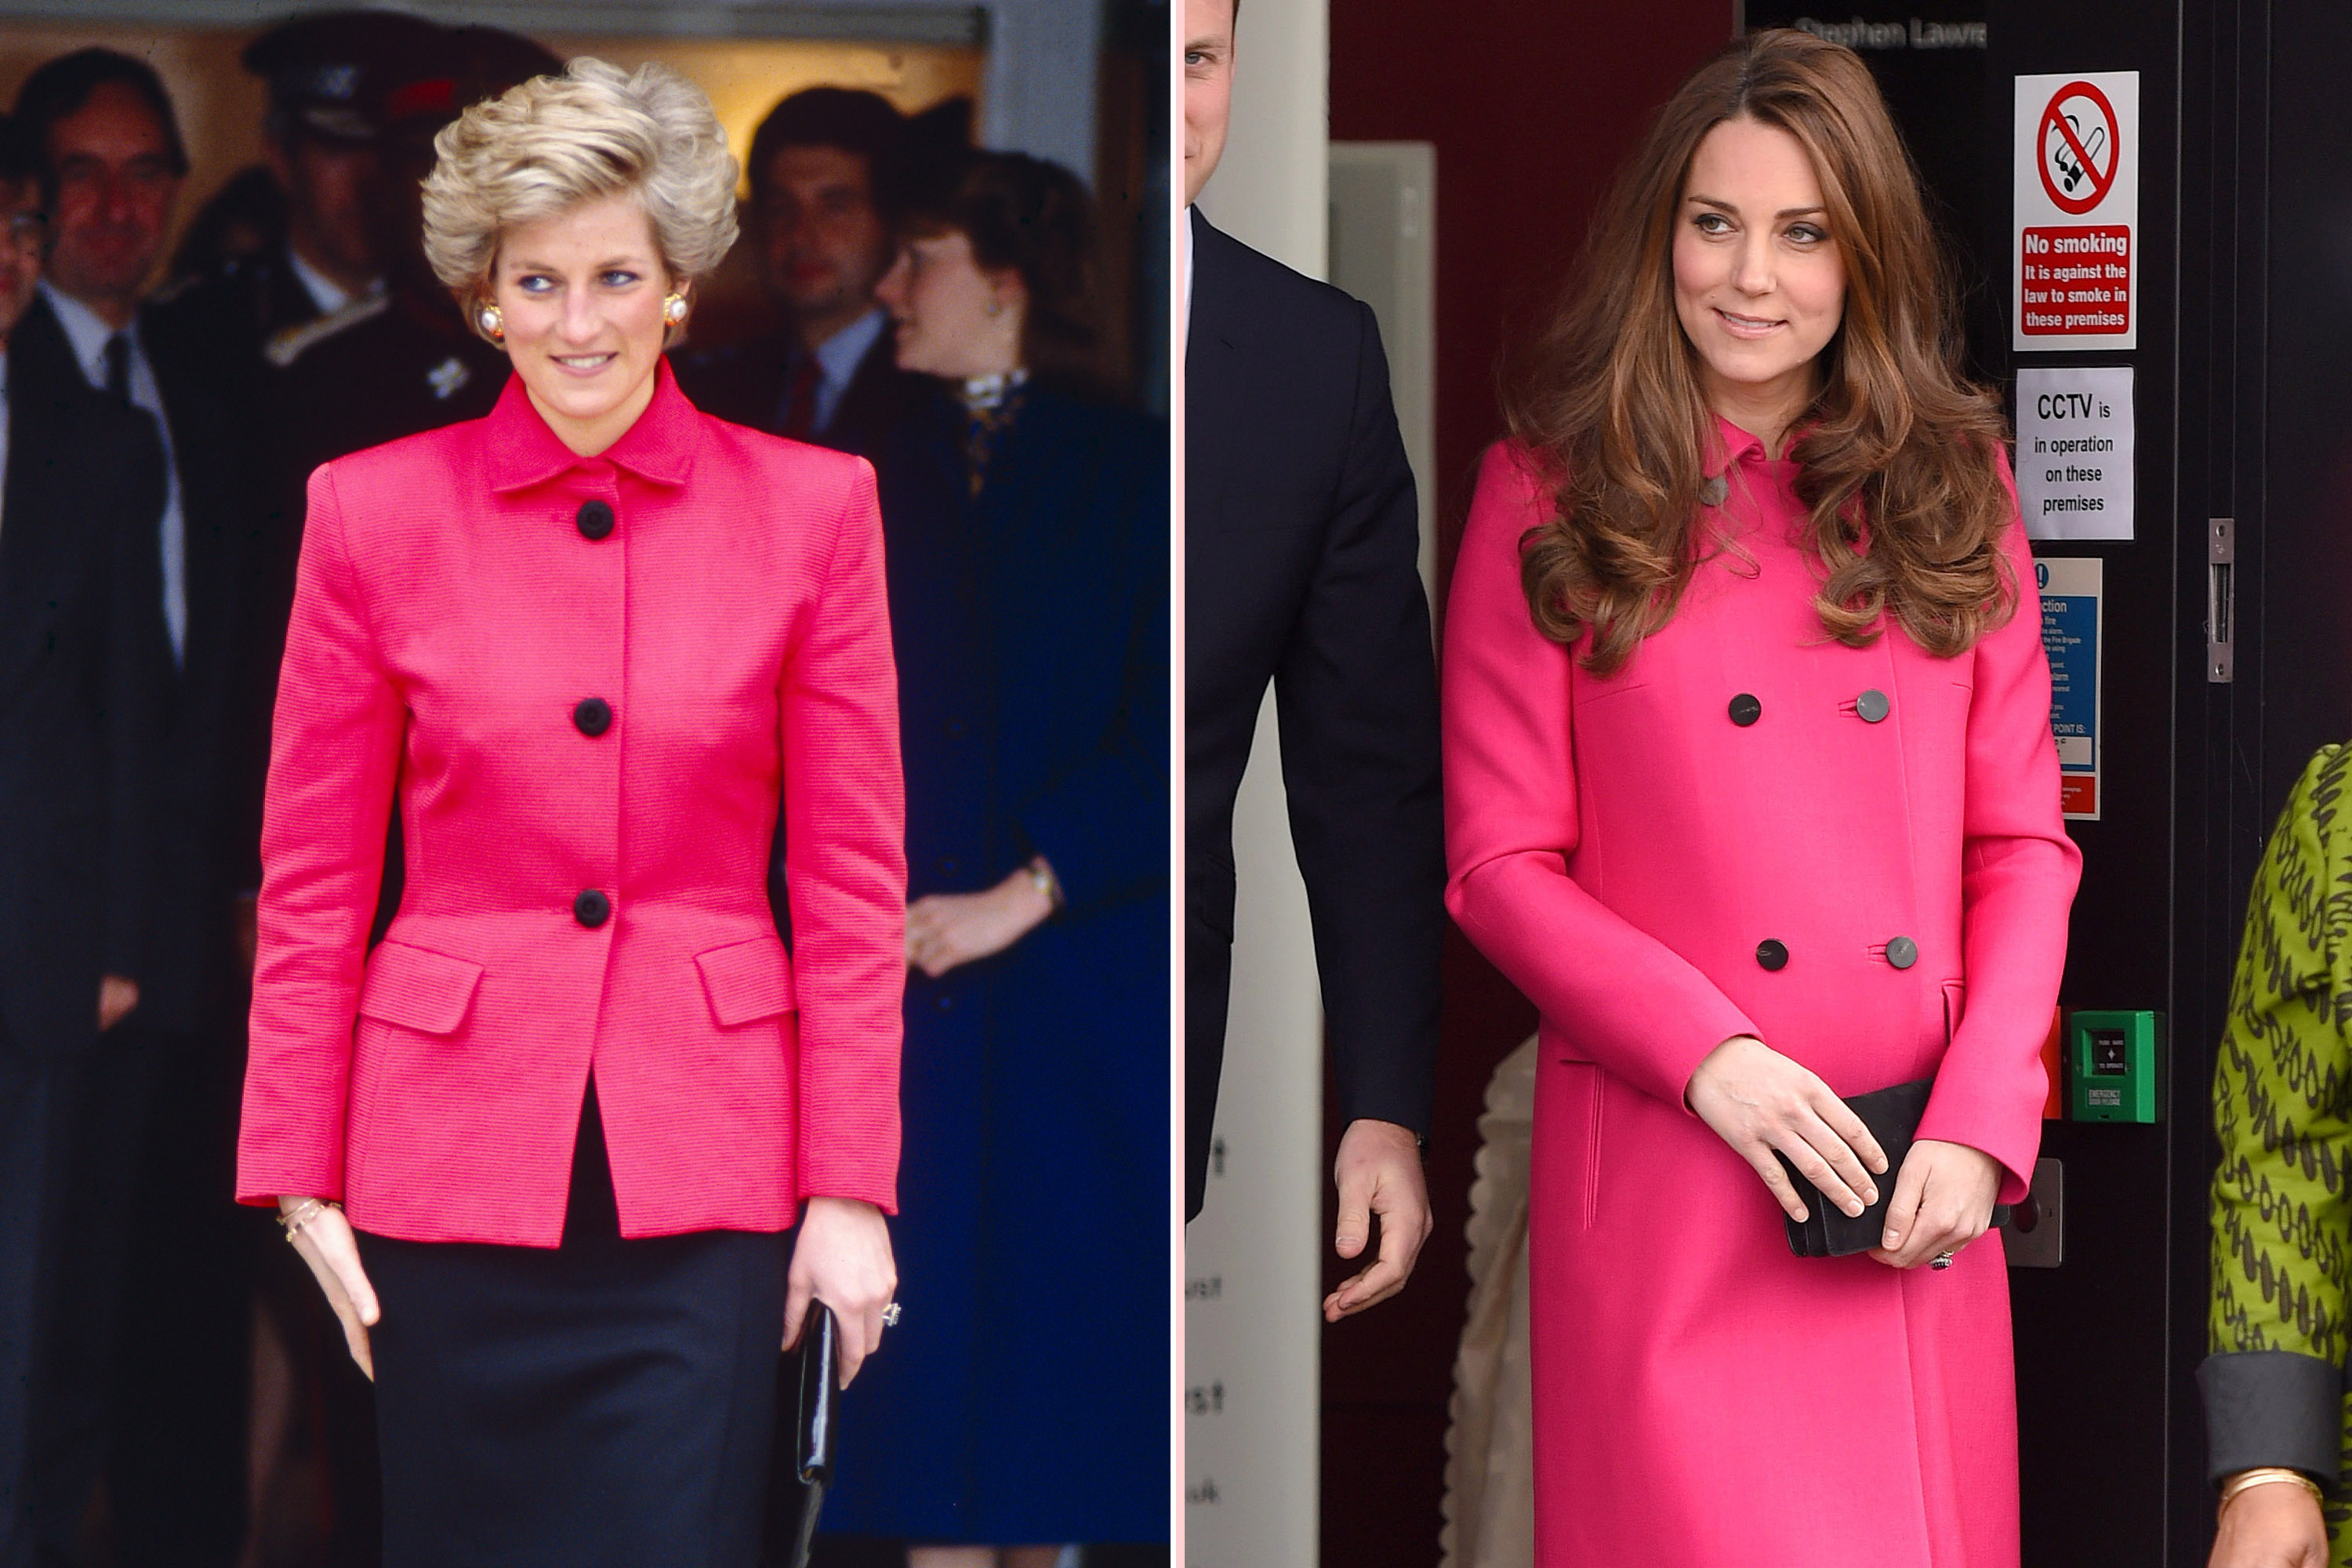 Diana's bright pink jacket looks like it could have inspired Kate's own fuchsia outerwear choice.